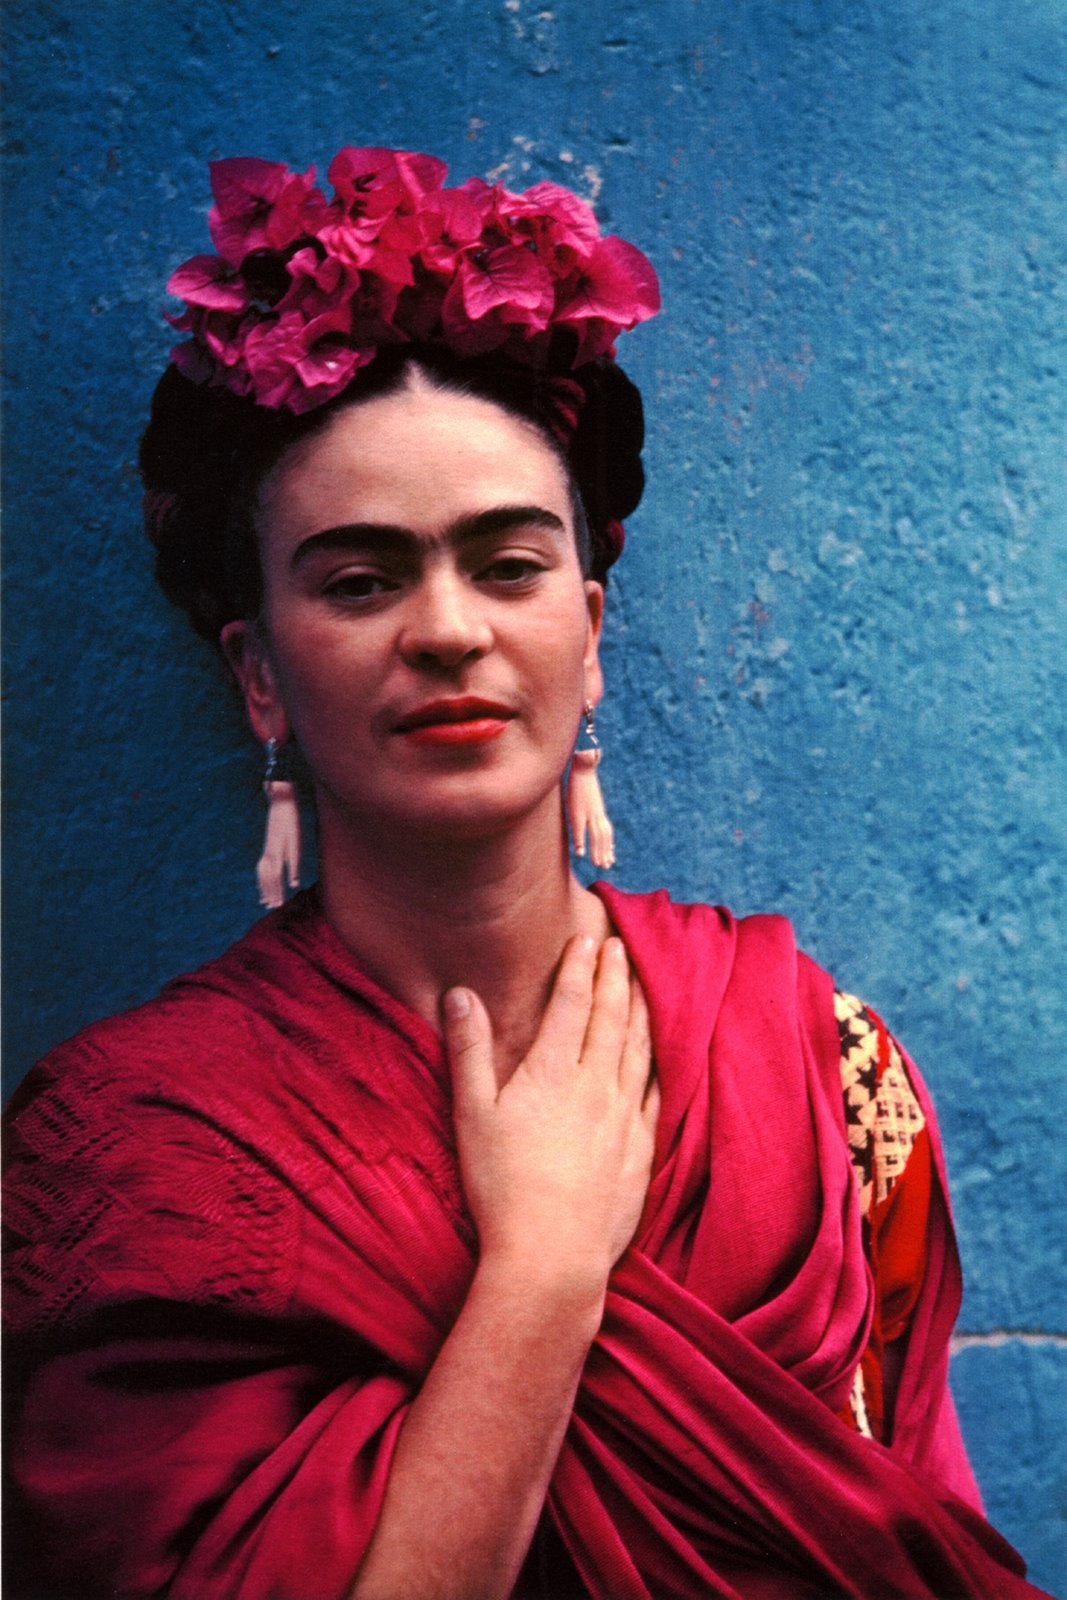 history video happy birthday frida kahlo de rivera july 6 1907 july 13 1954 neo griot. Black Bedroom Furniture Sets. Home Design Ideas